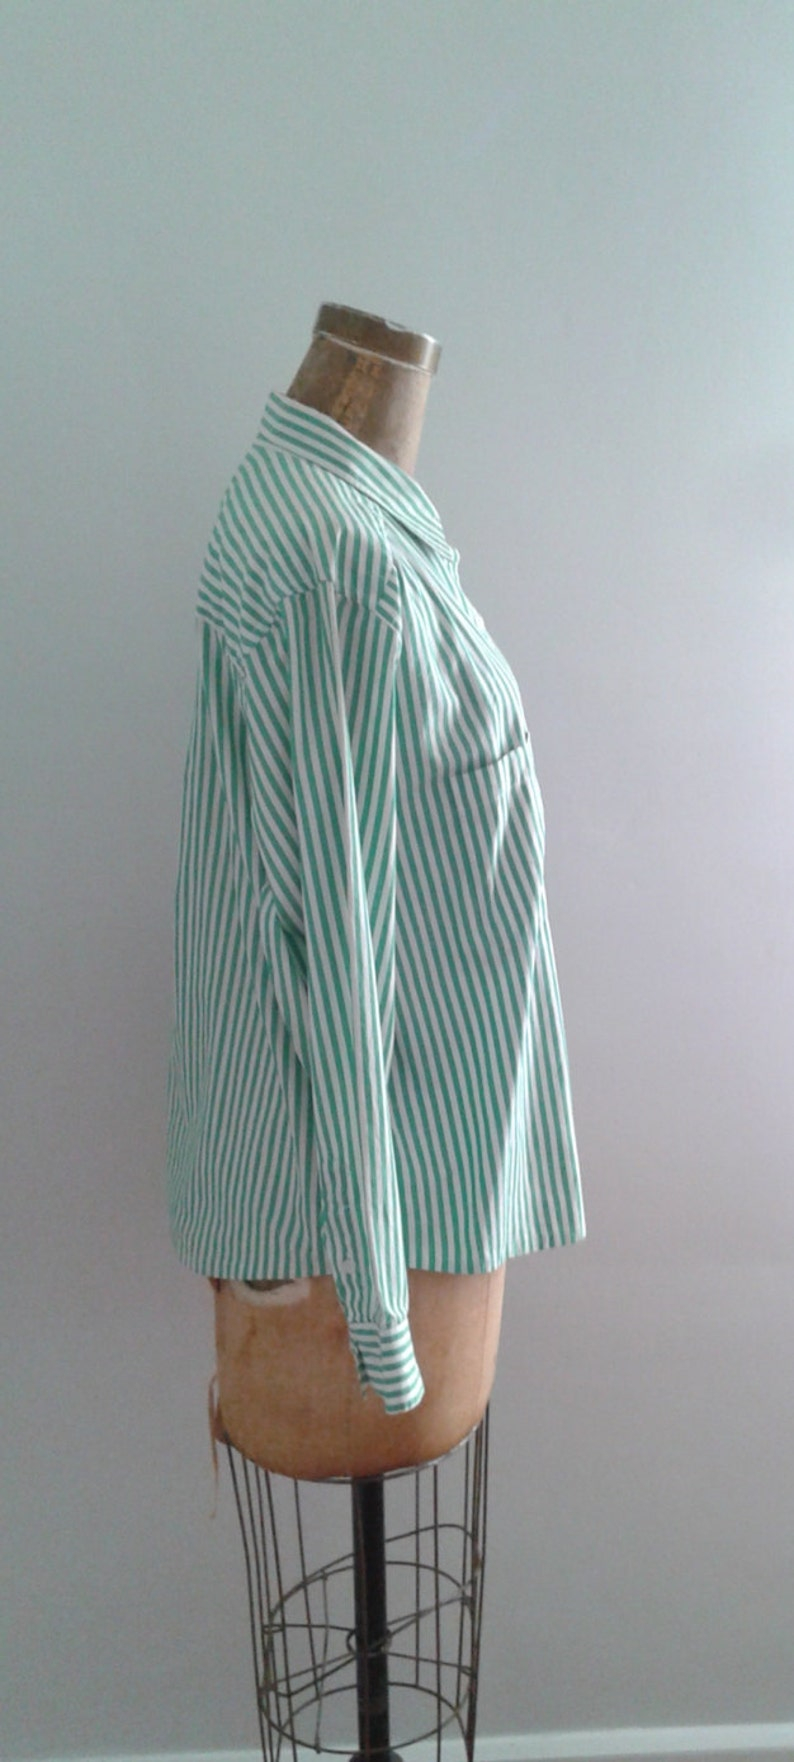 Vintage 1990/'s Green White Striped Cotton Button Up Shirt Blouse Embroidered Crest Sz Med Oversized Minimalist